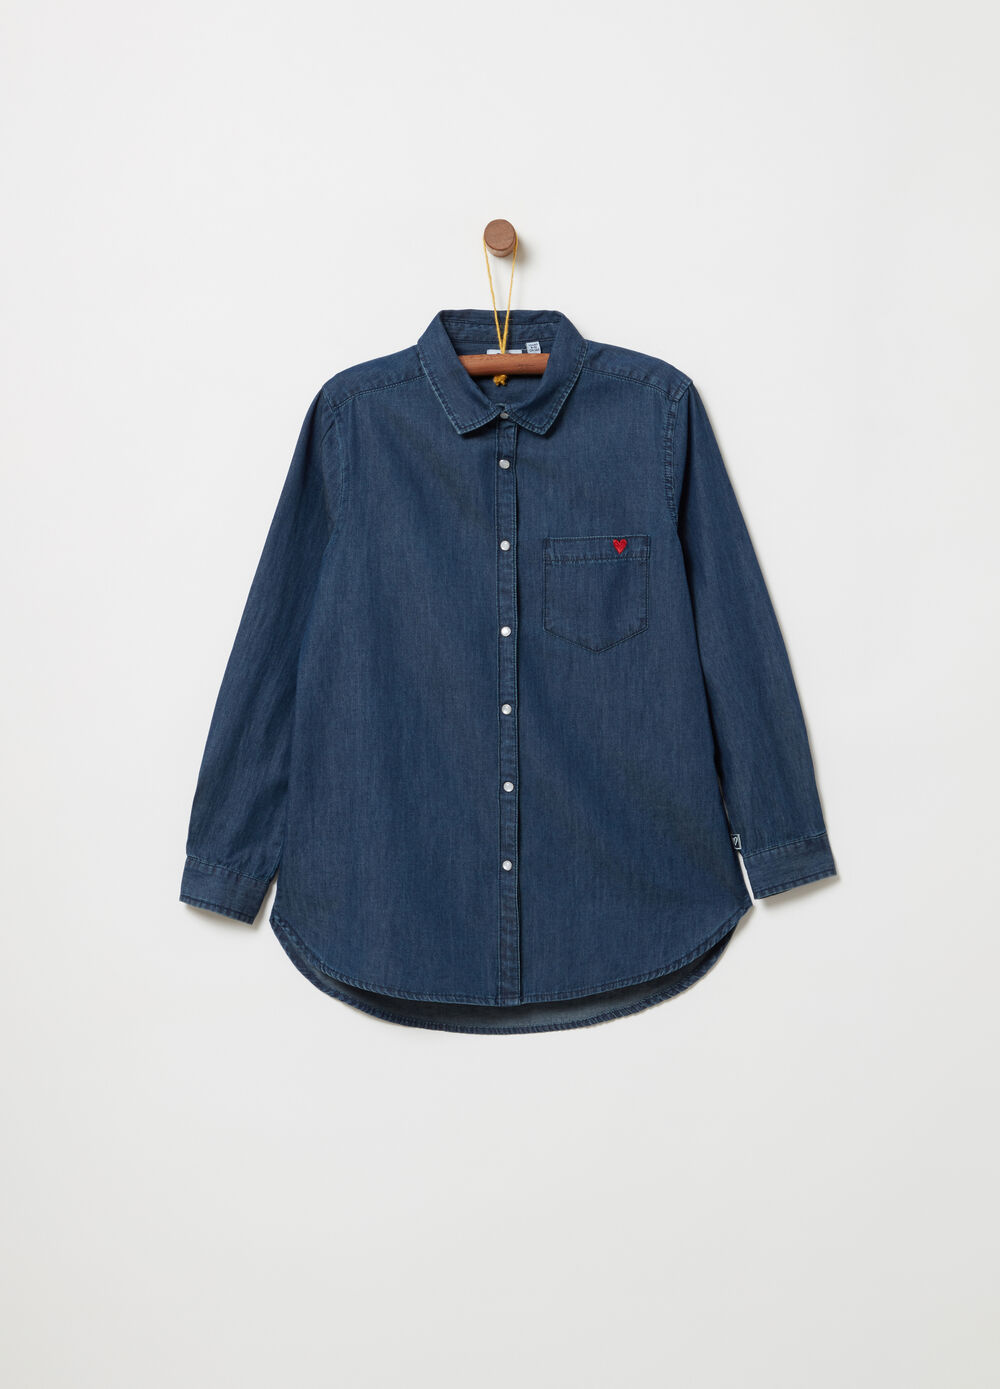 Lightweight chambray shirt with pocket